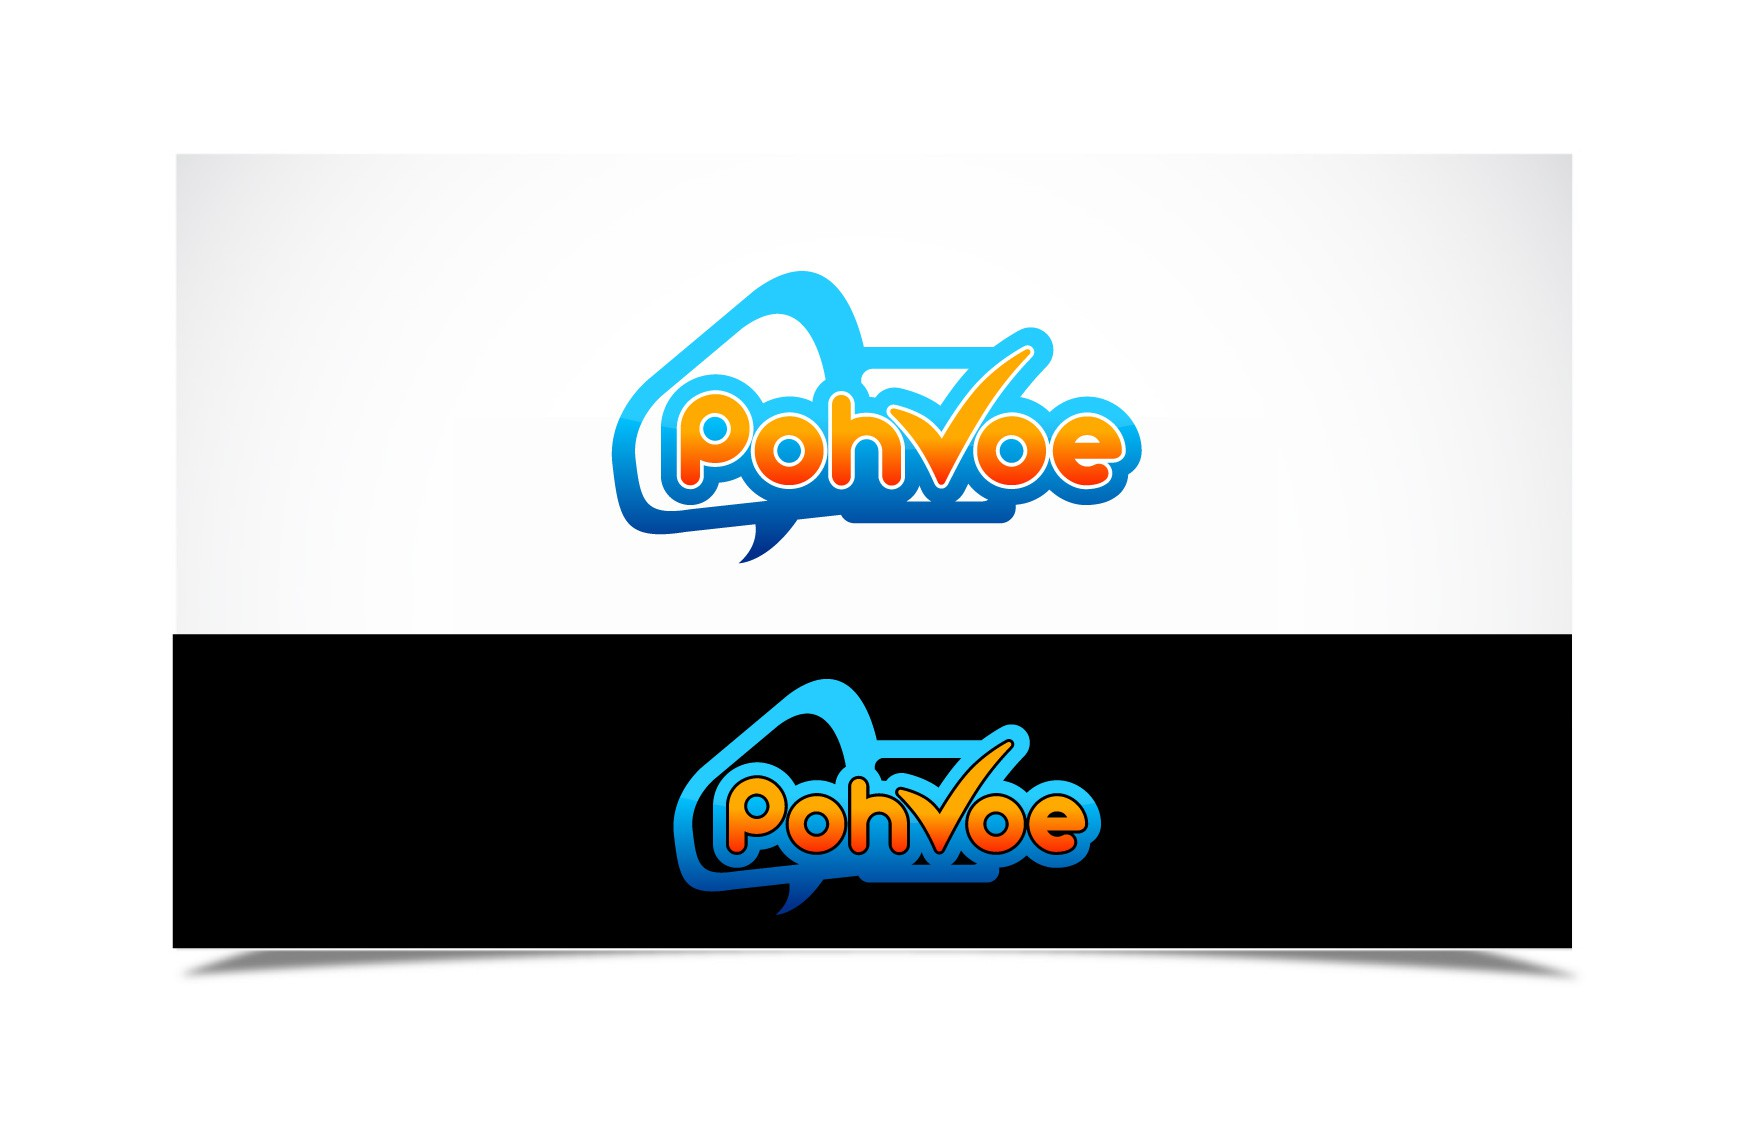 Desgin the logo for PohVoe.com!! A big social media site!